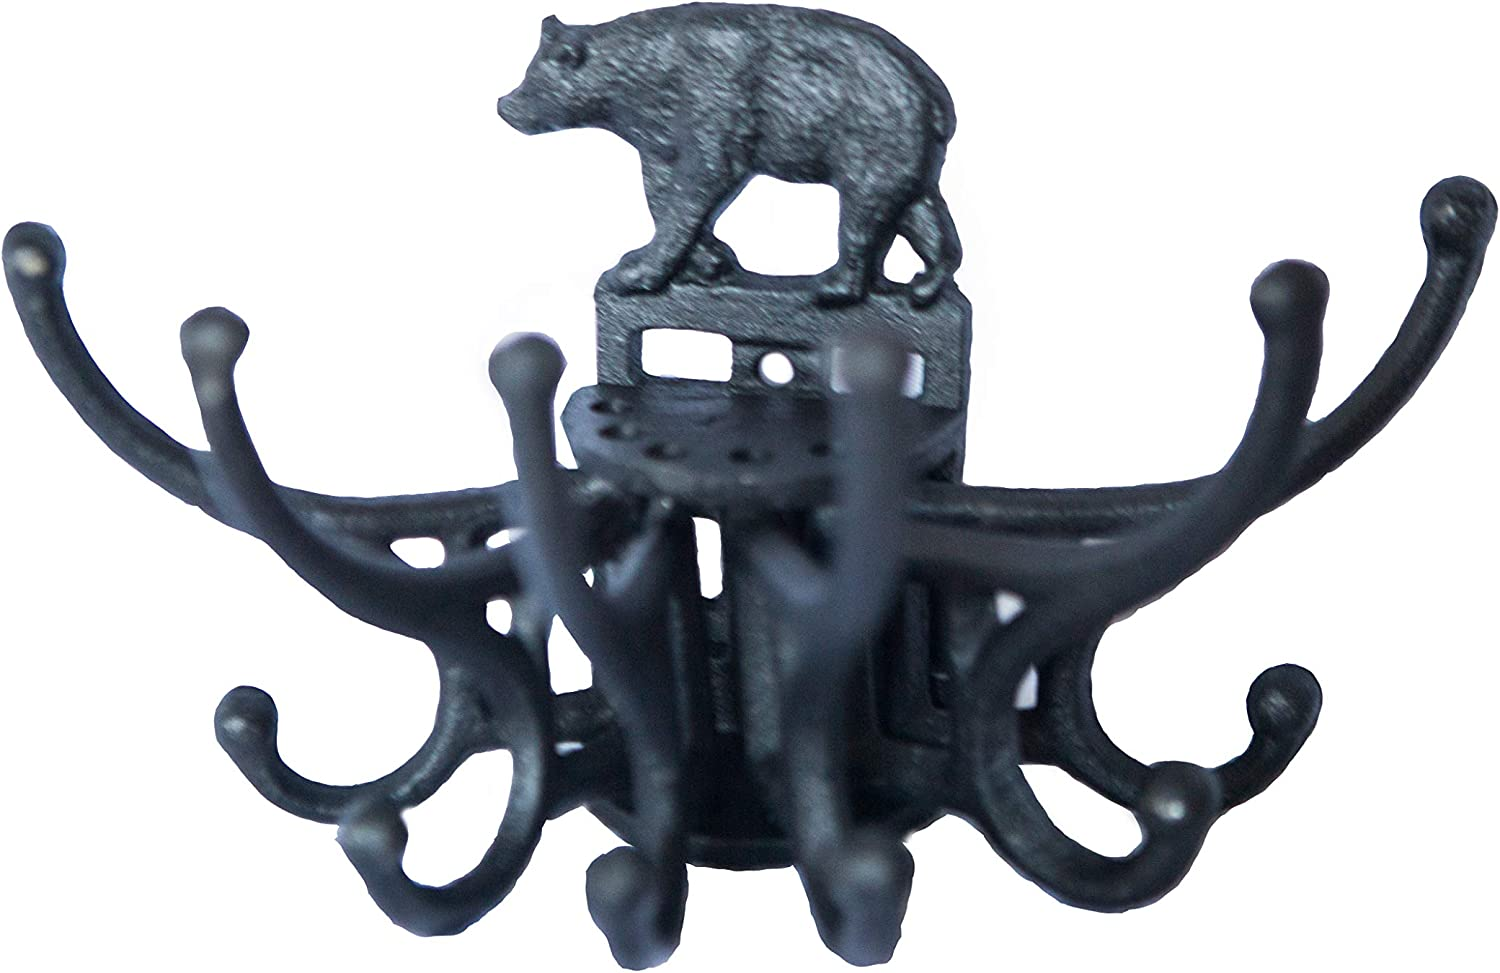 Bear Coat Hanger Wall Hook. Spinning Sale special price Iron Cast Free Year-end gift Hanging